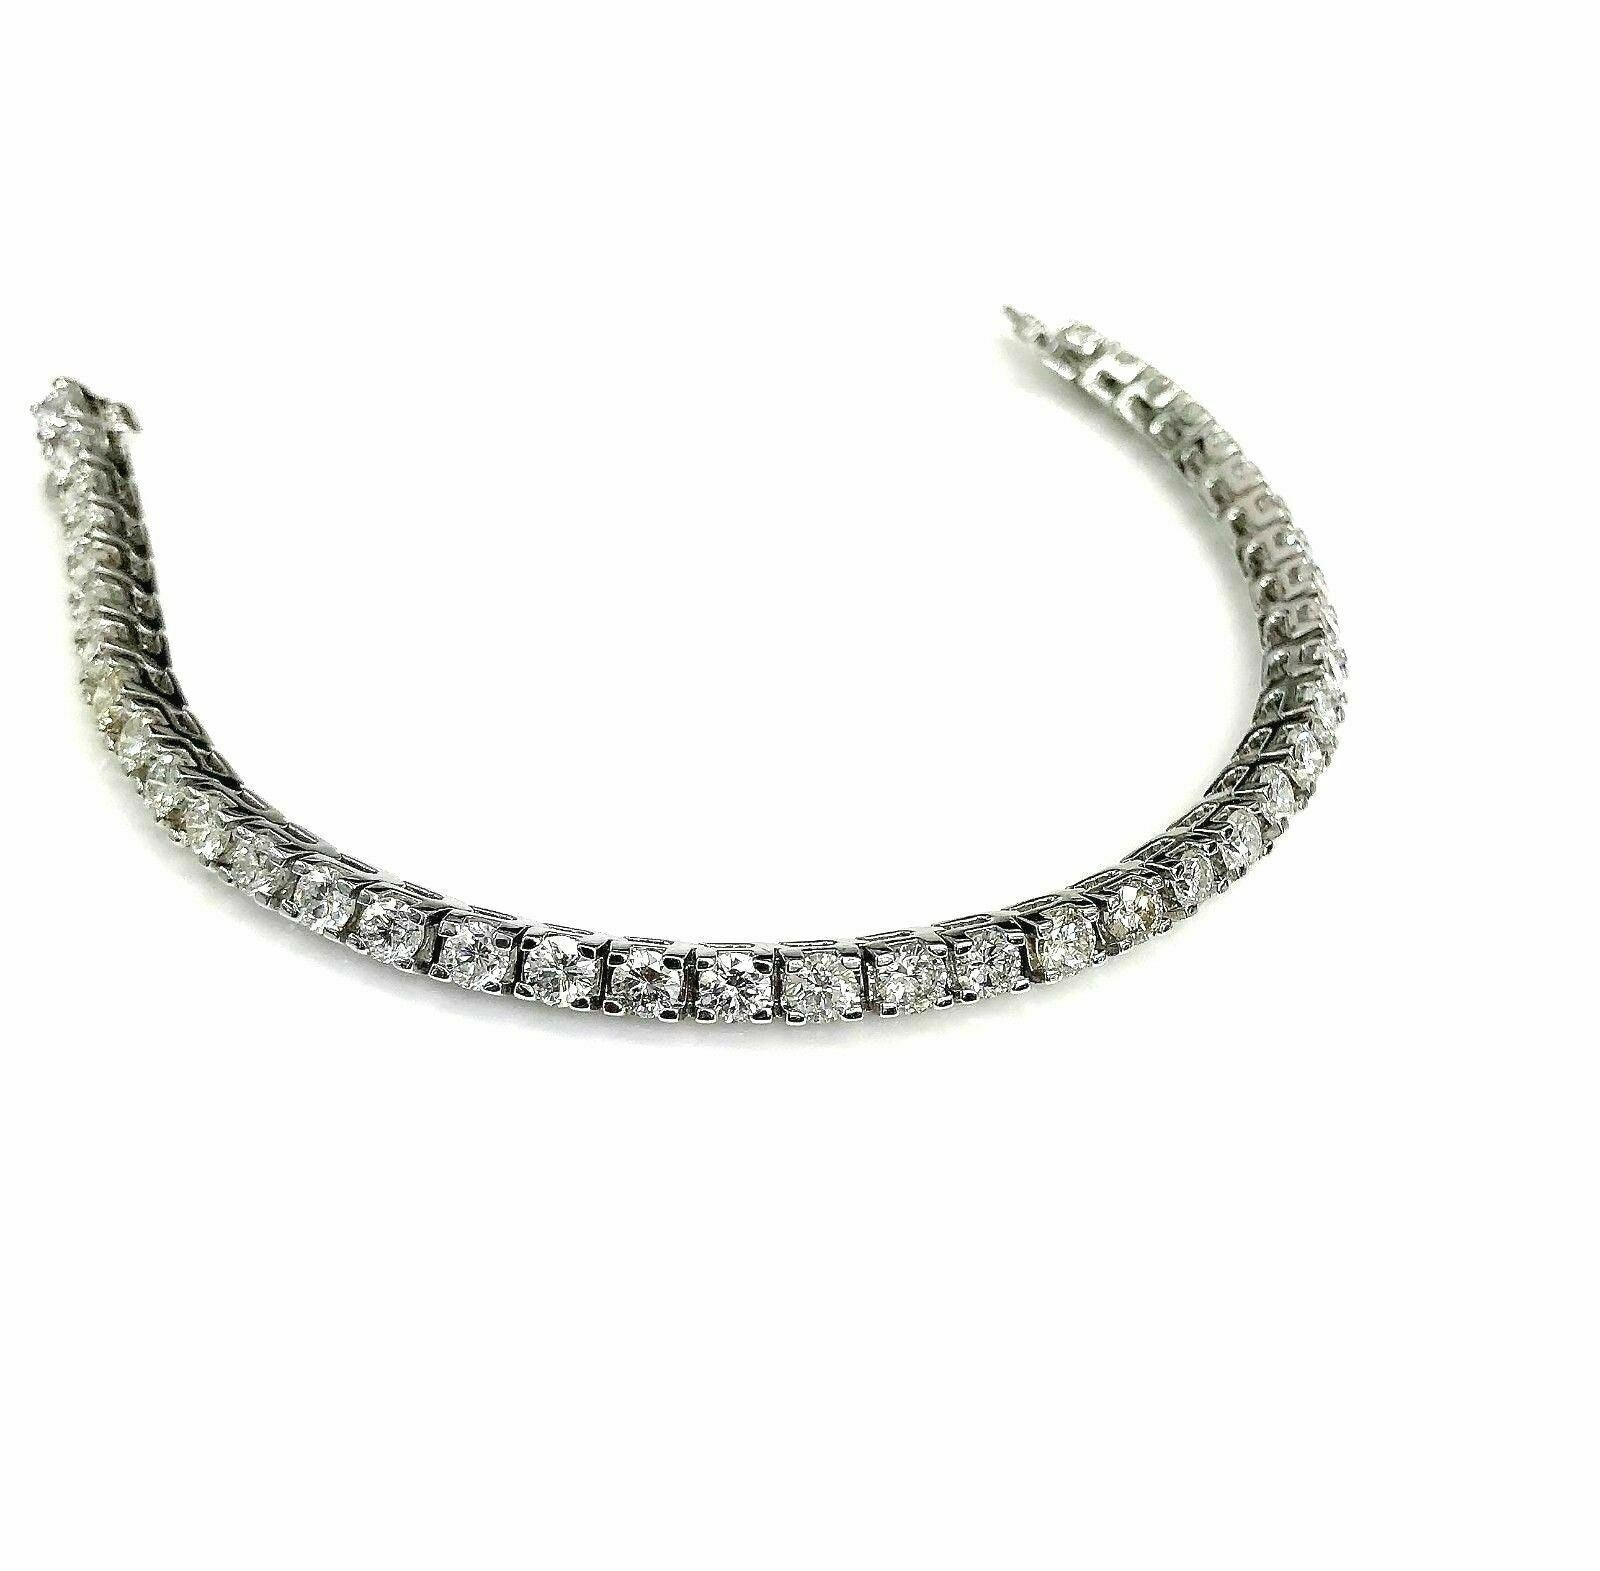 $19,950 Retail 7.24 Carats t.w. Diamond Tennis Bracelet 14K White Gold